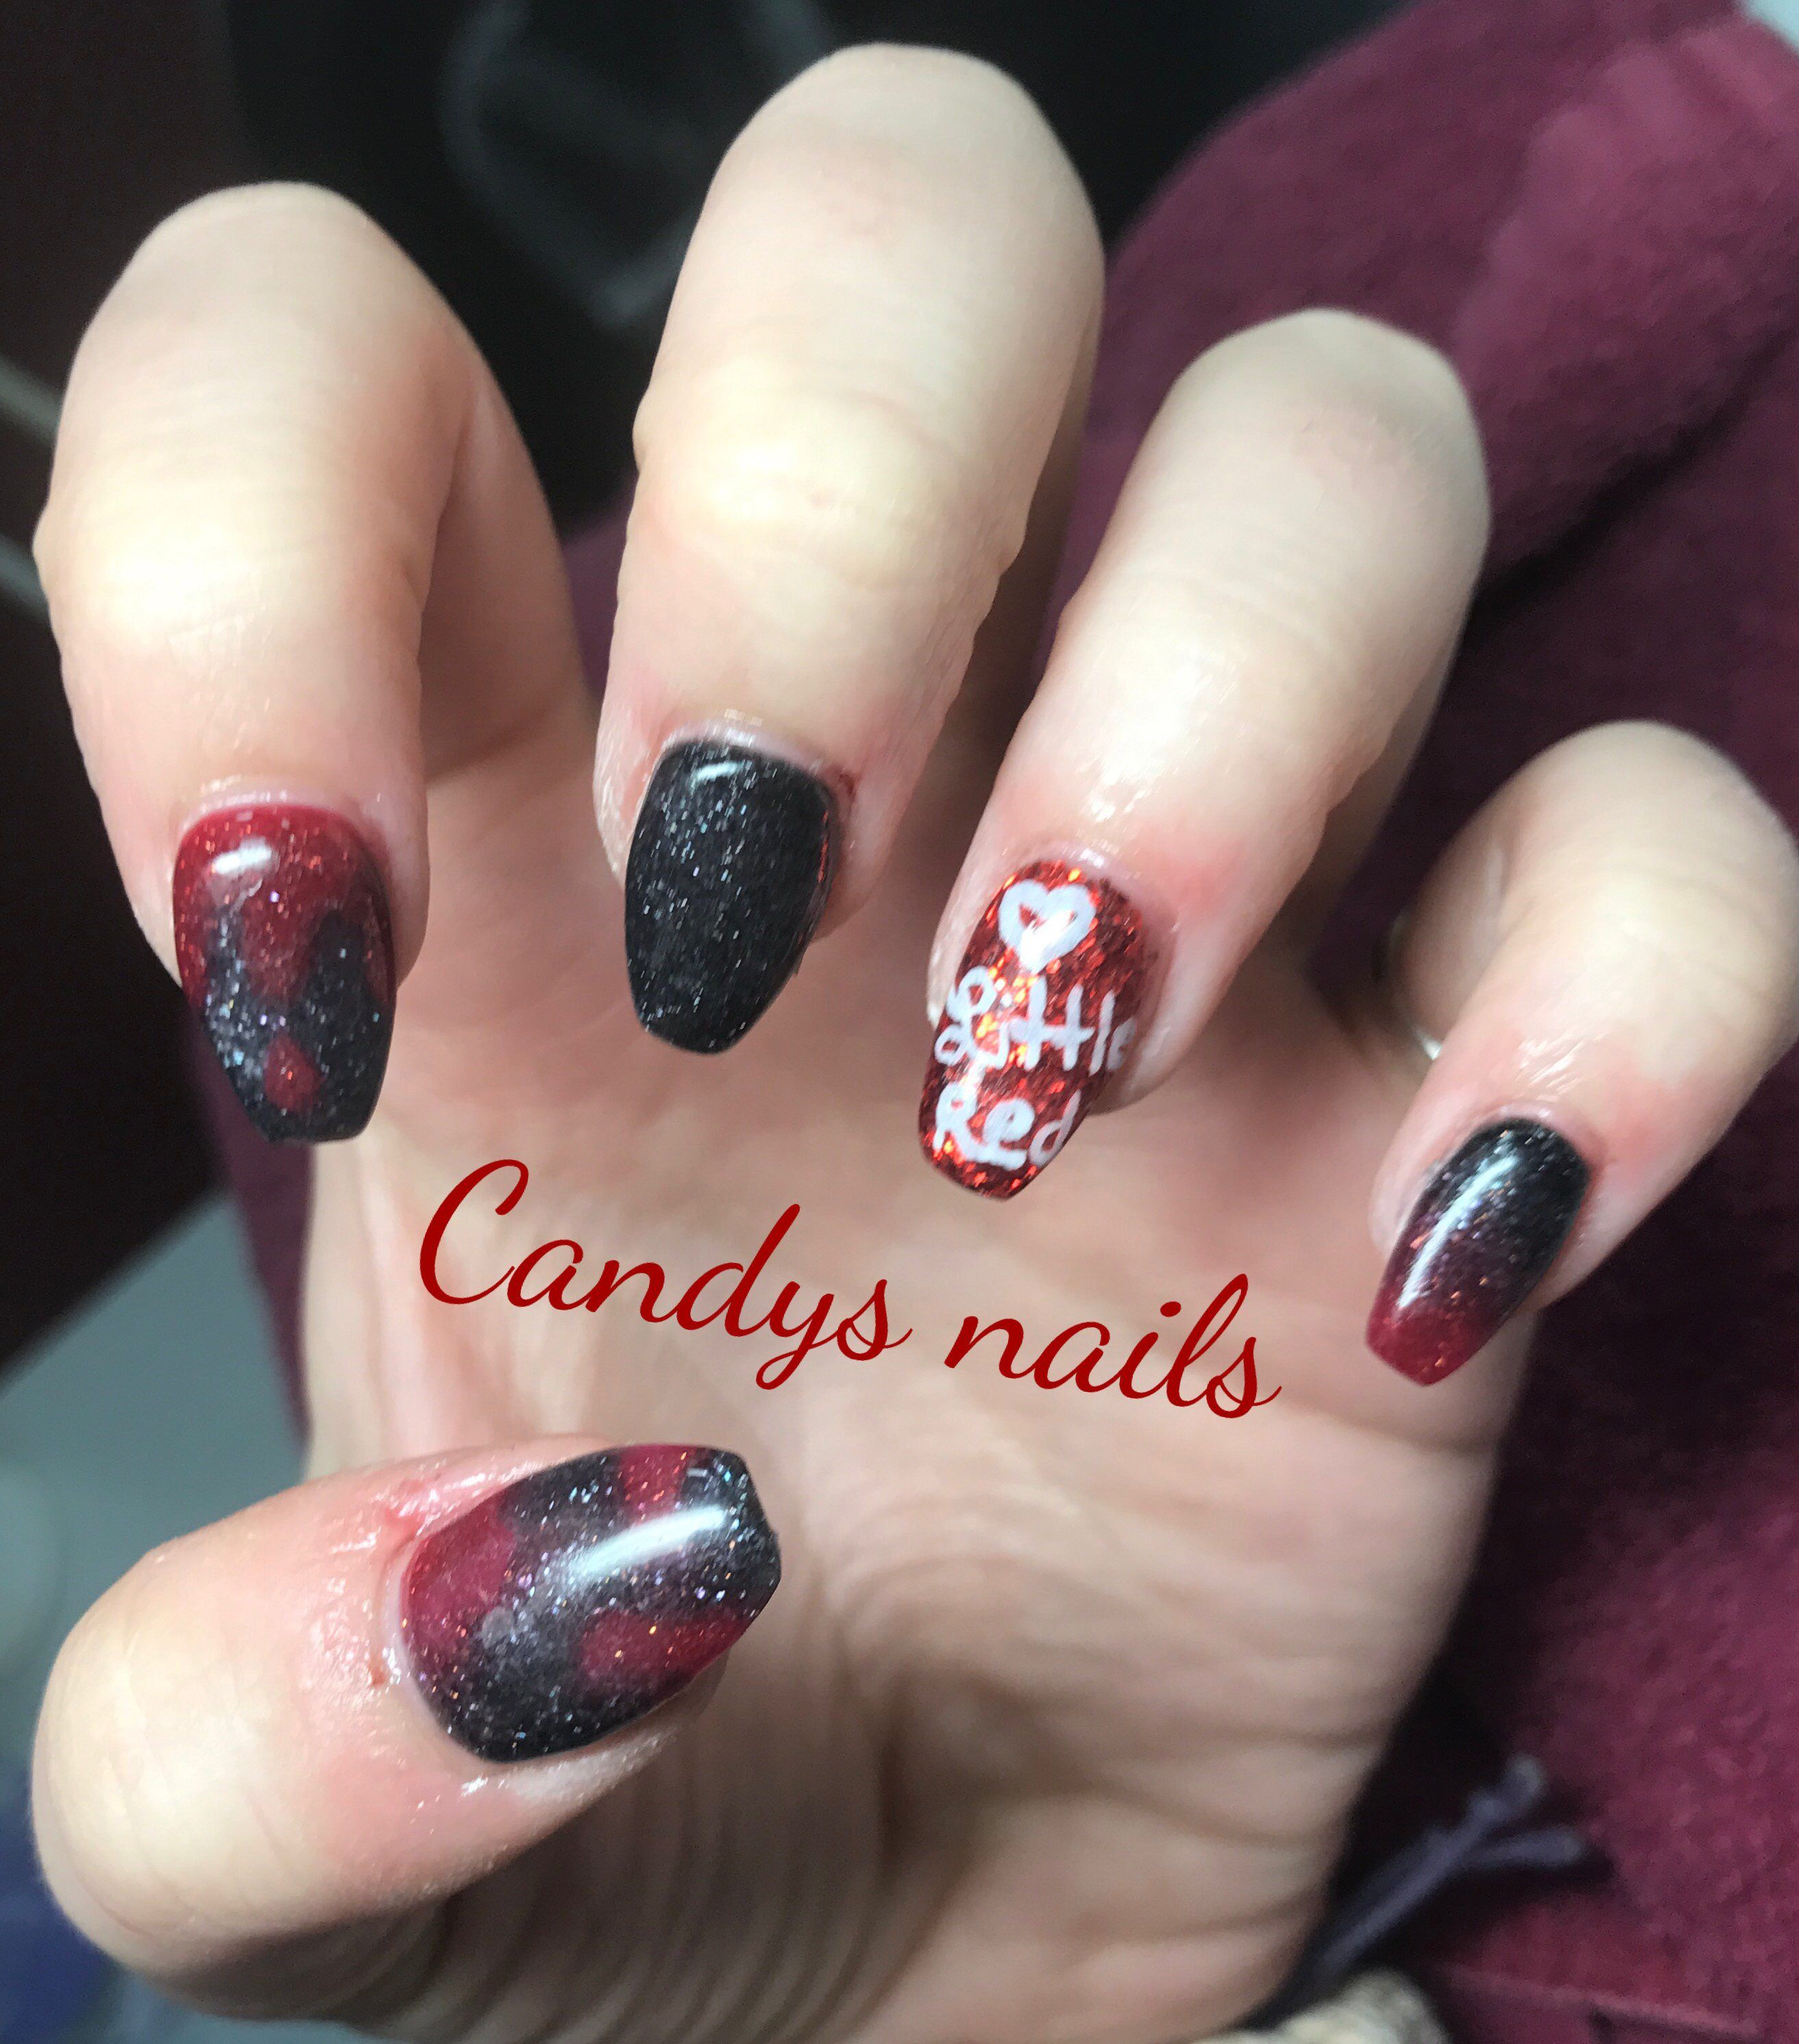 Little Red Riding Hood Design Acrylic Nails Candys Nails Pinterest